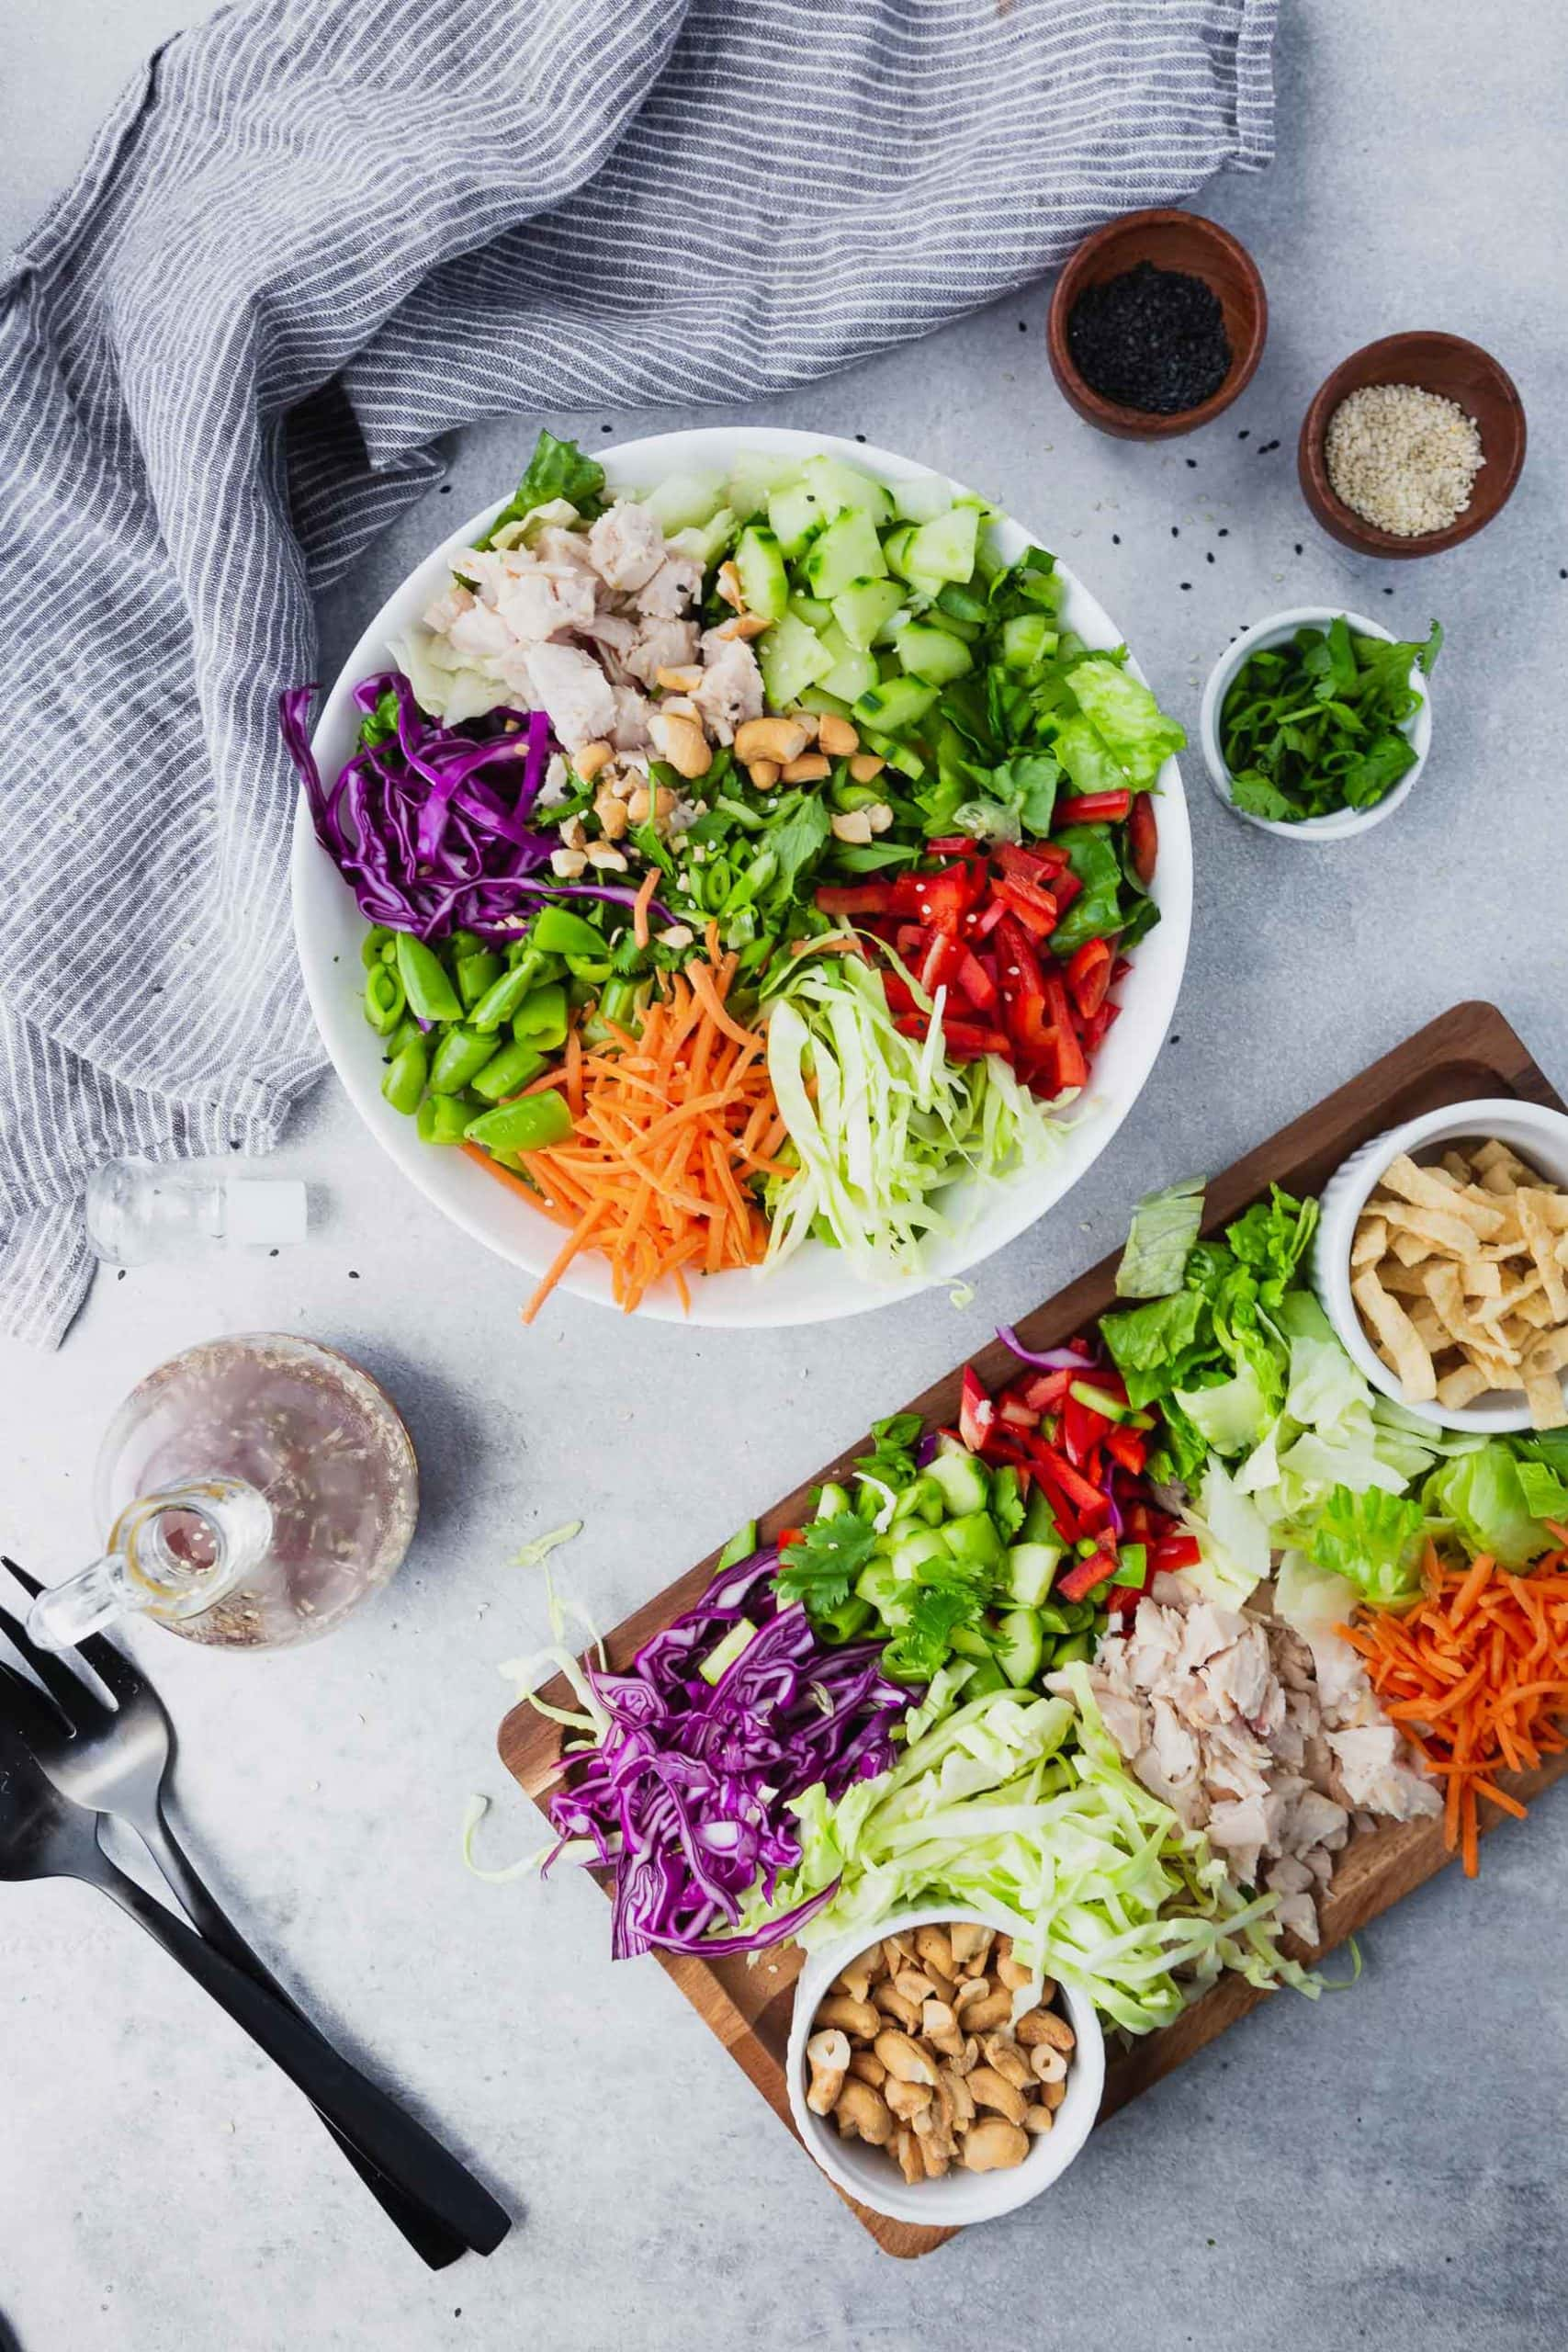 Picture all ingredients for Chinese chicken salad all in a large white bowl and also on a rectangular serving plate.